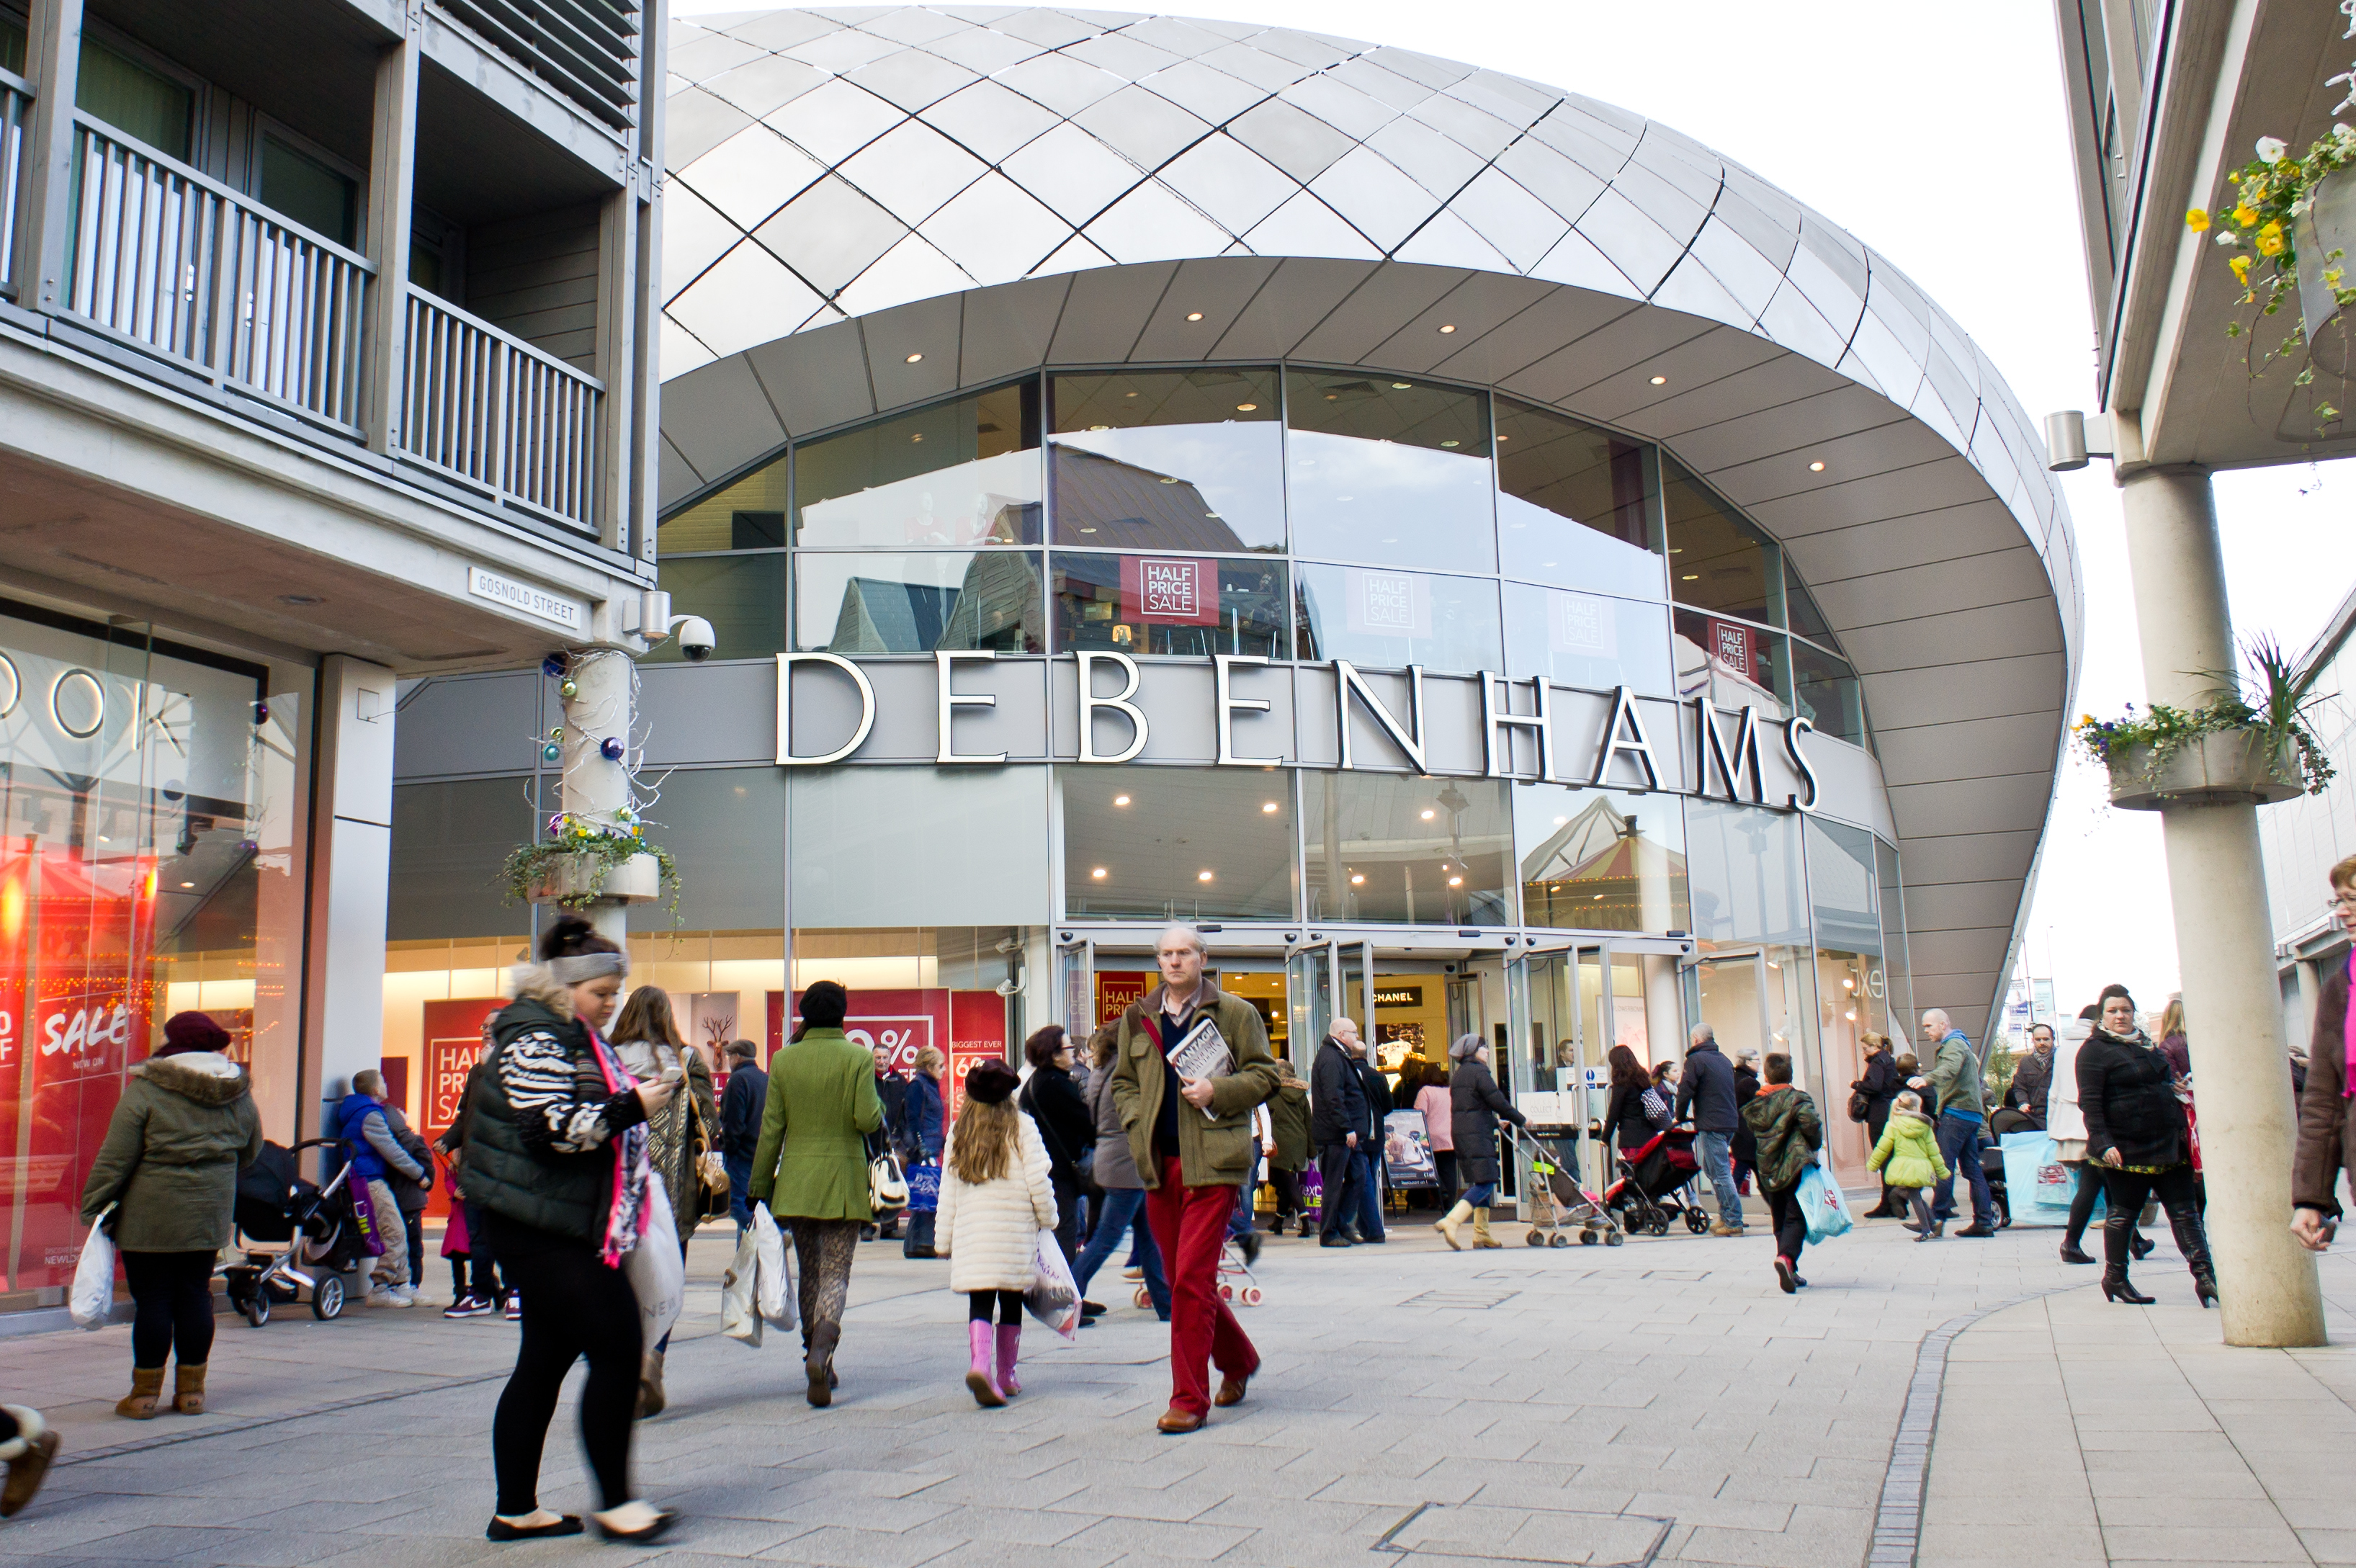 Will the last person to leave Debenhams please switch off the lights?